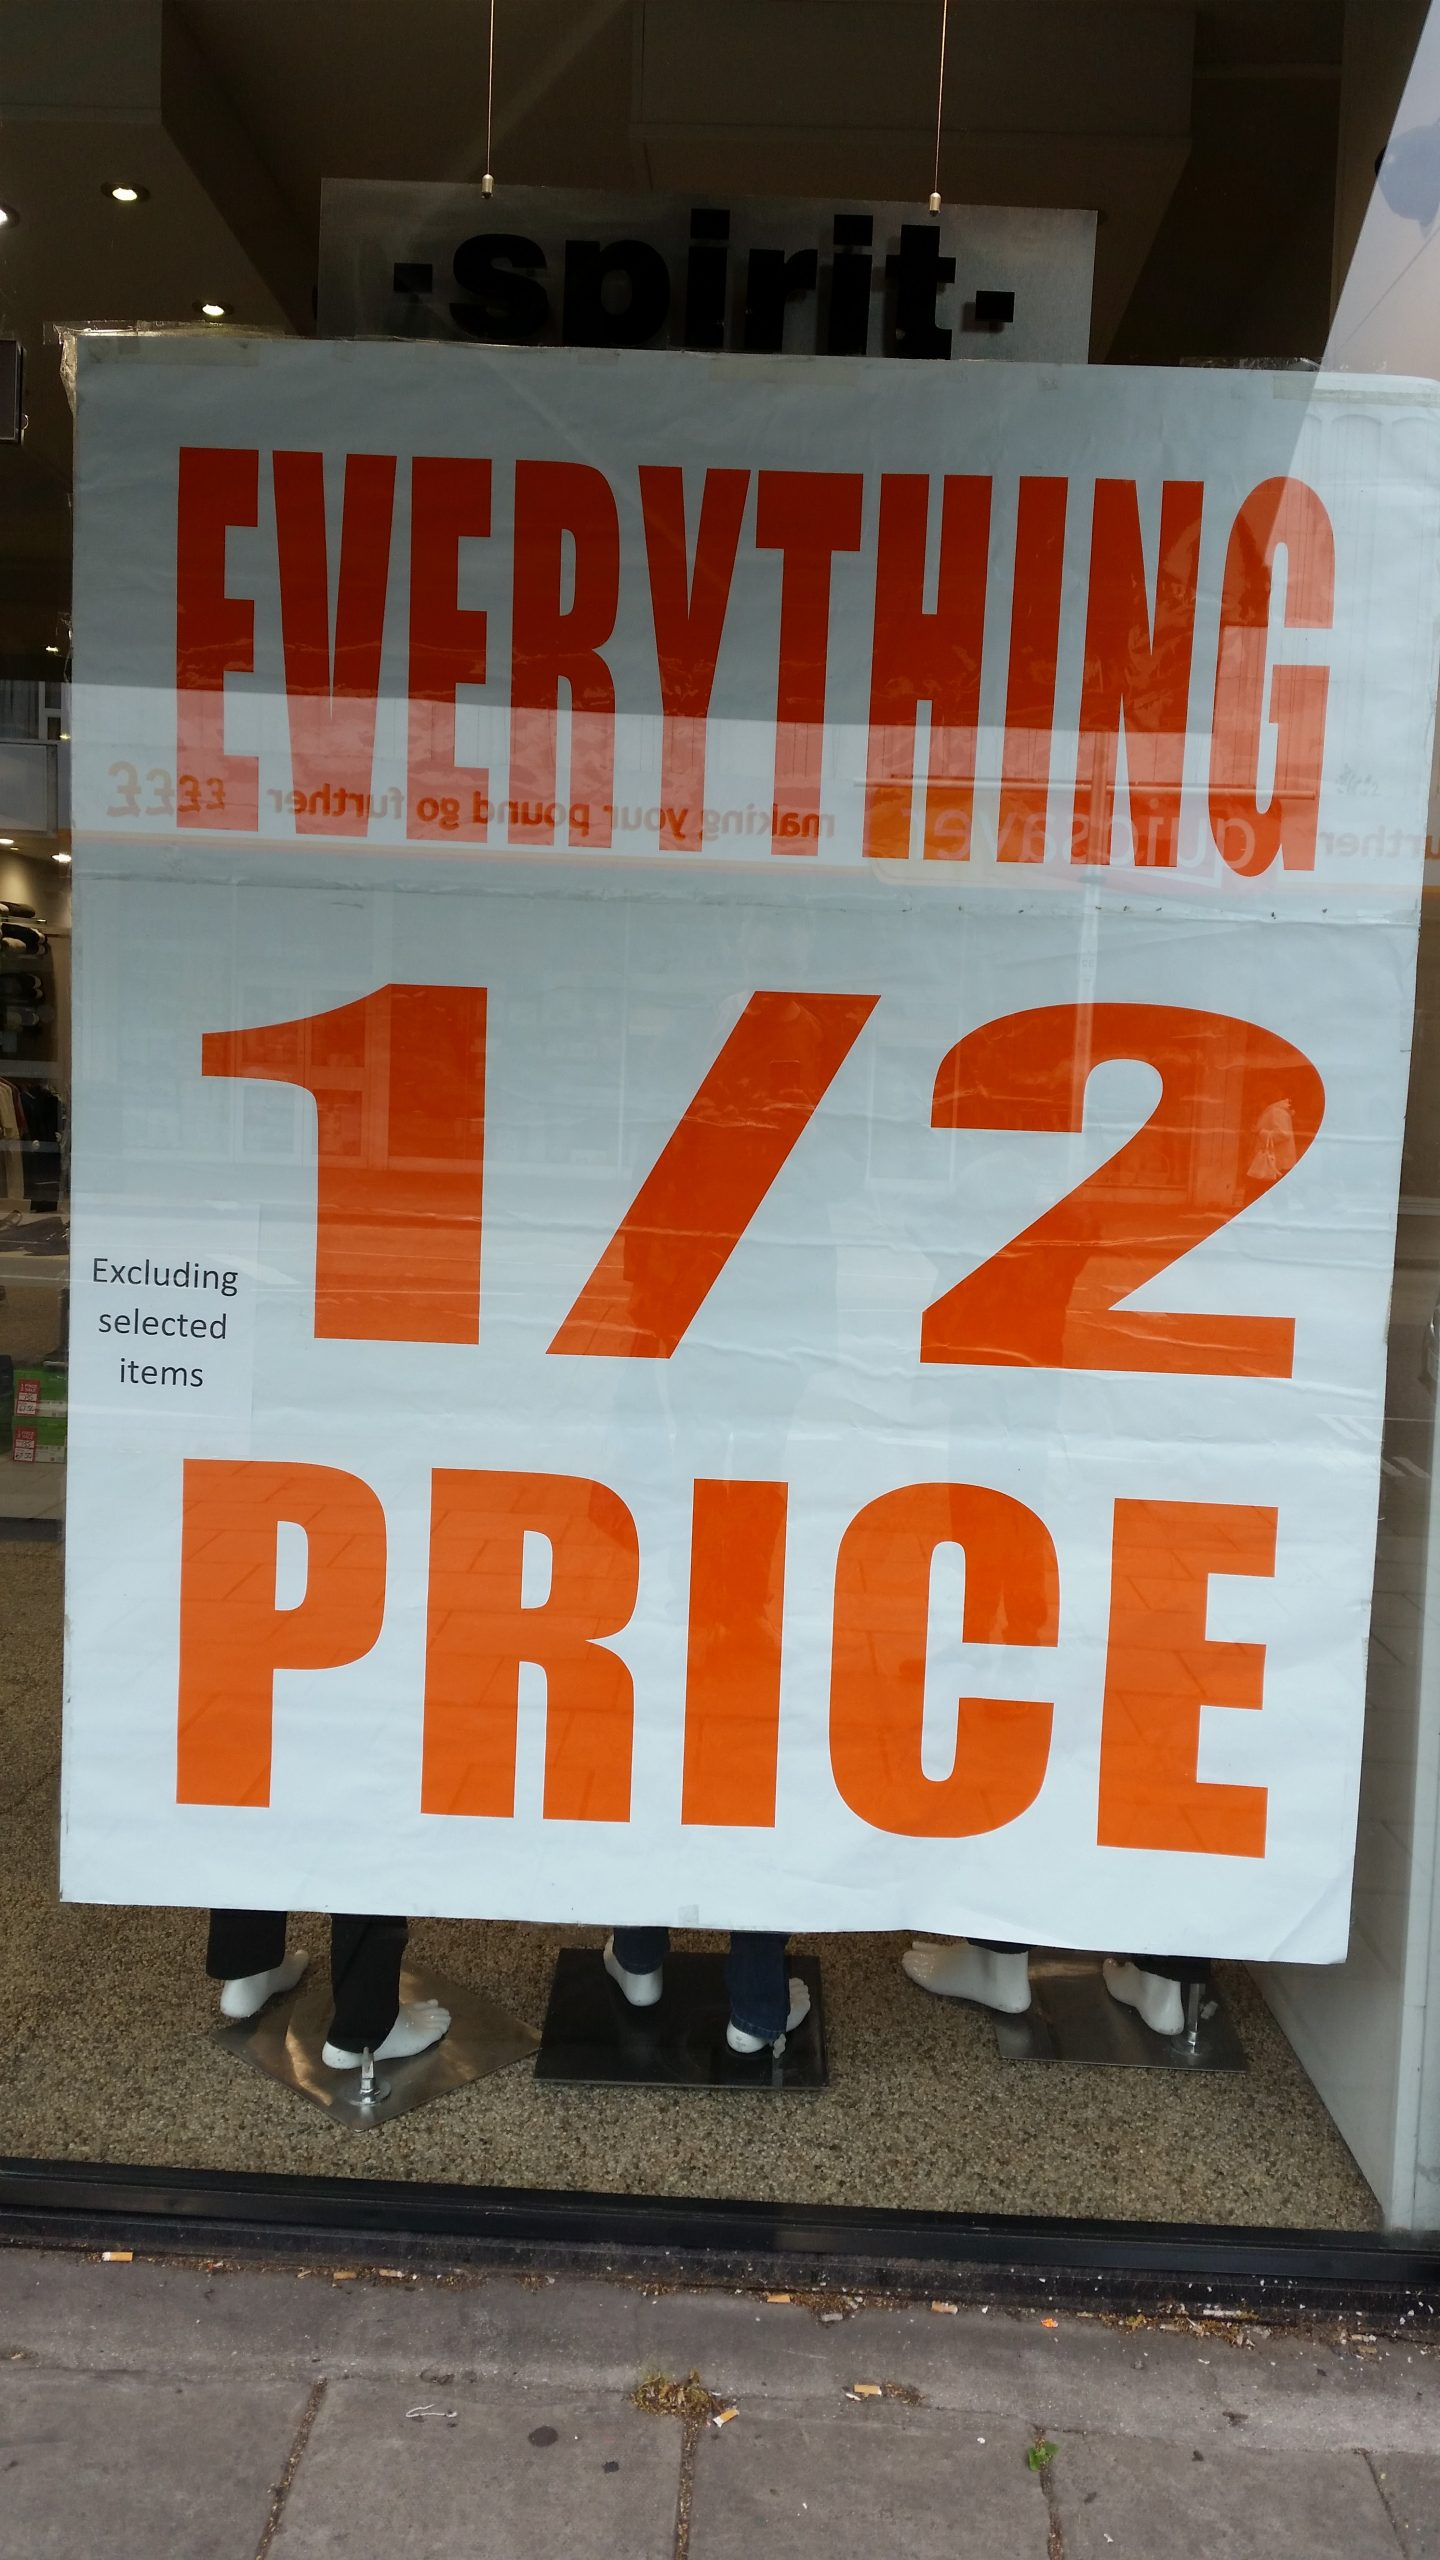 20170422 115959 scaled - Everything Half Price